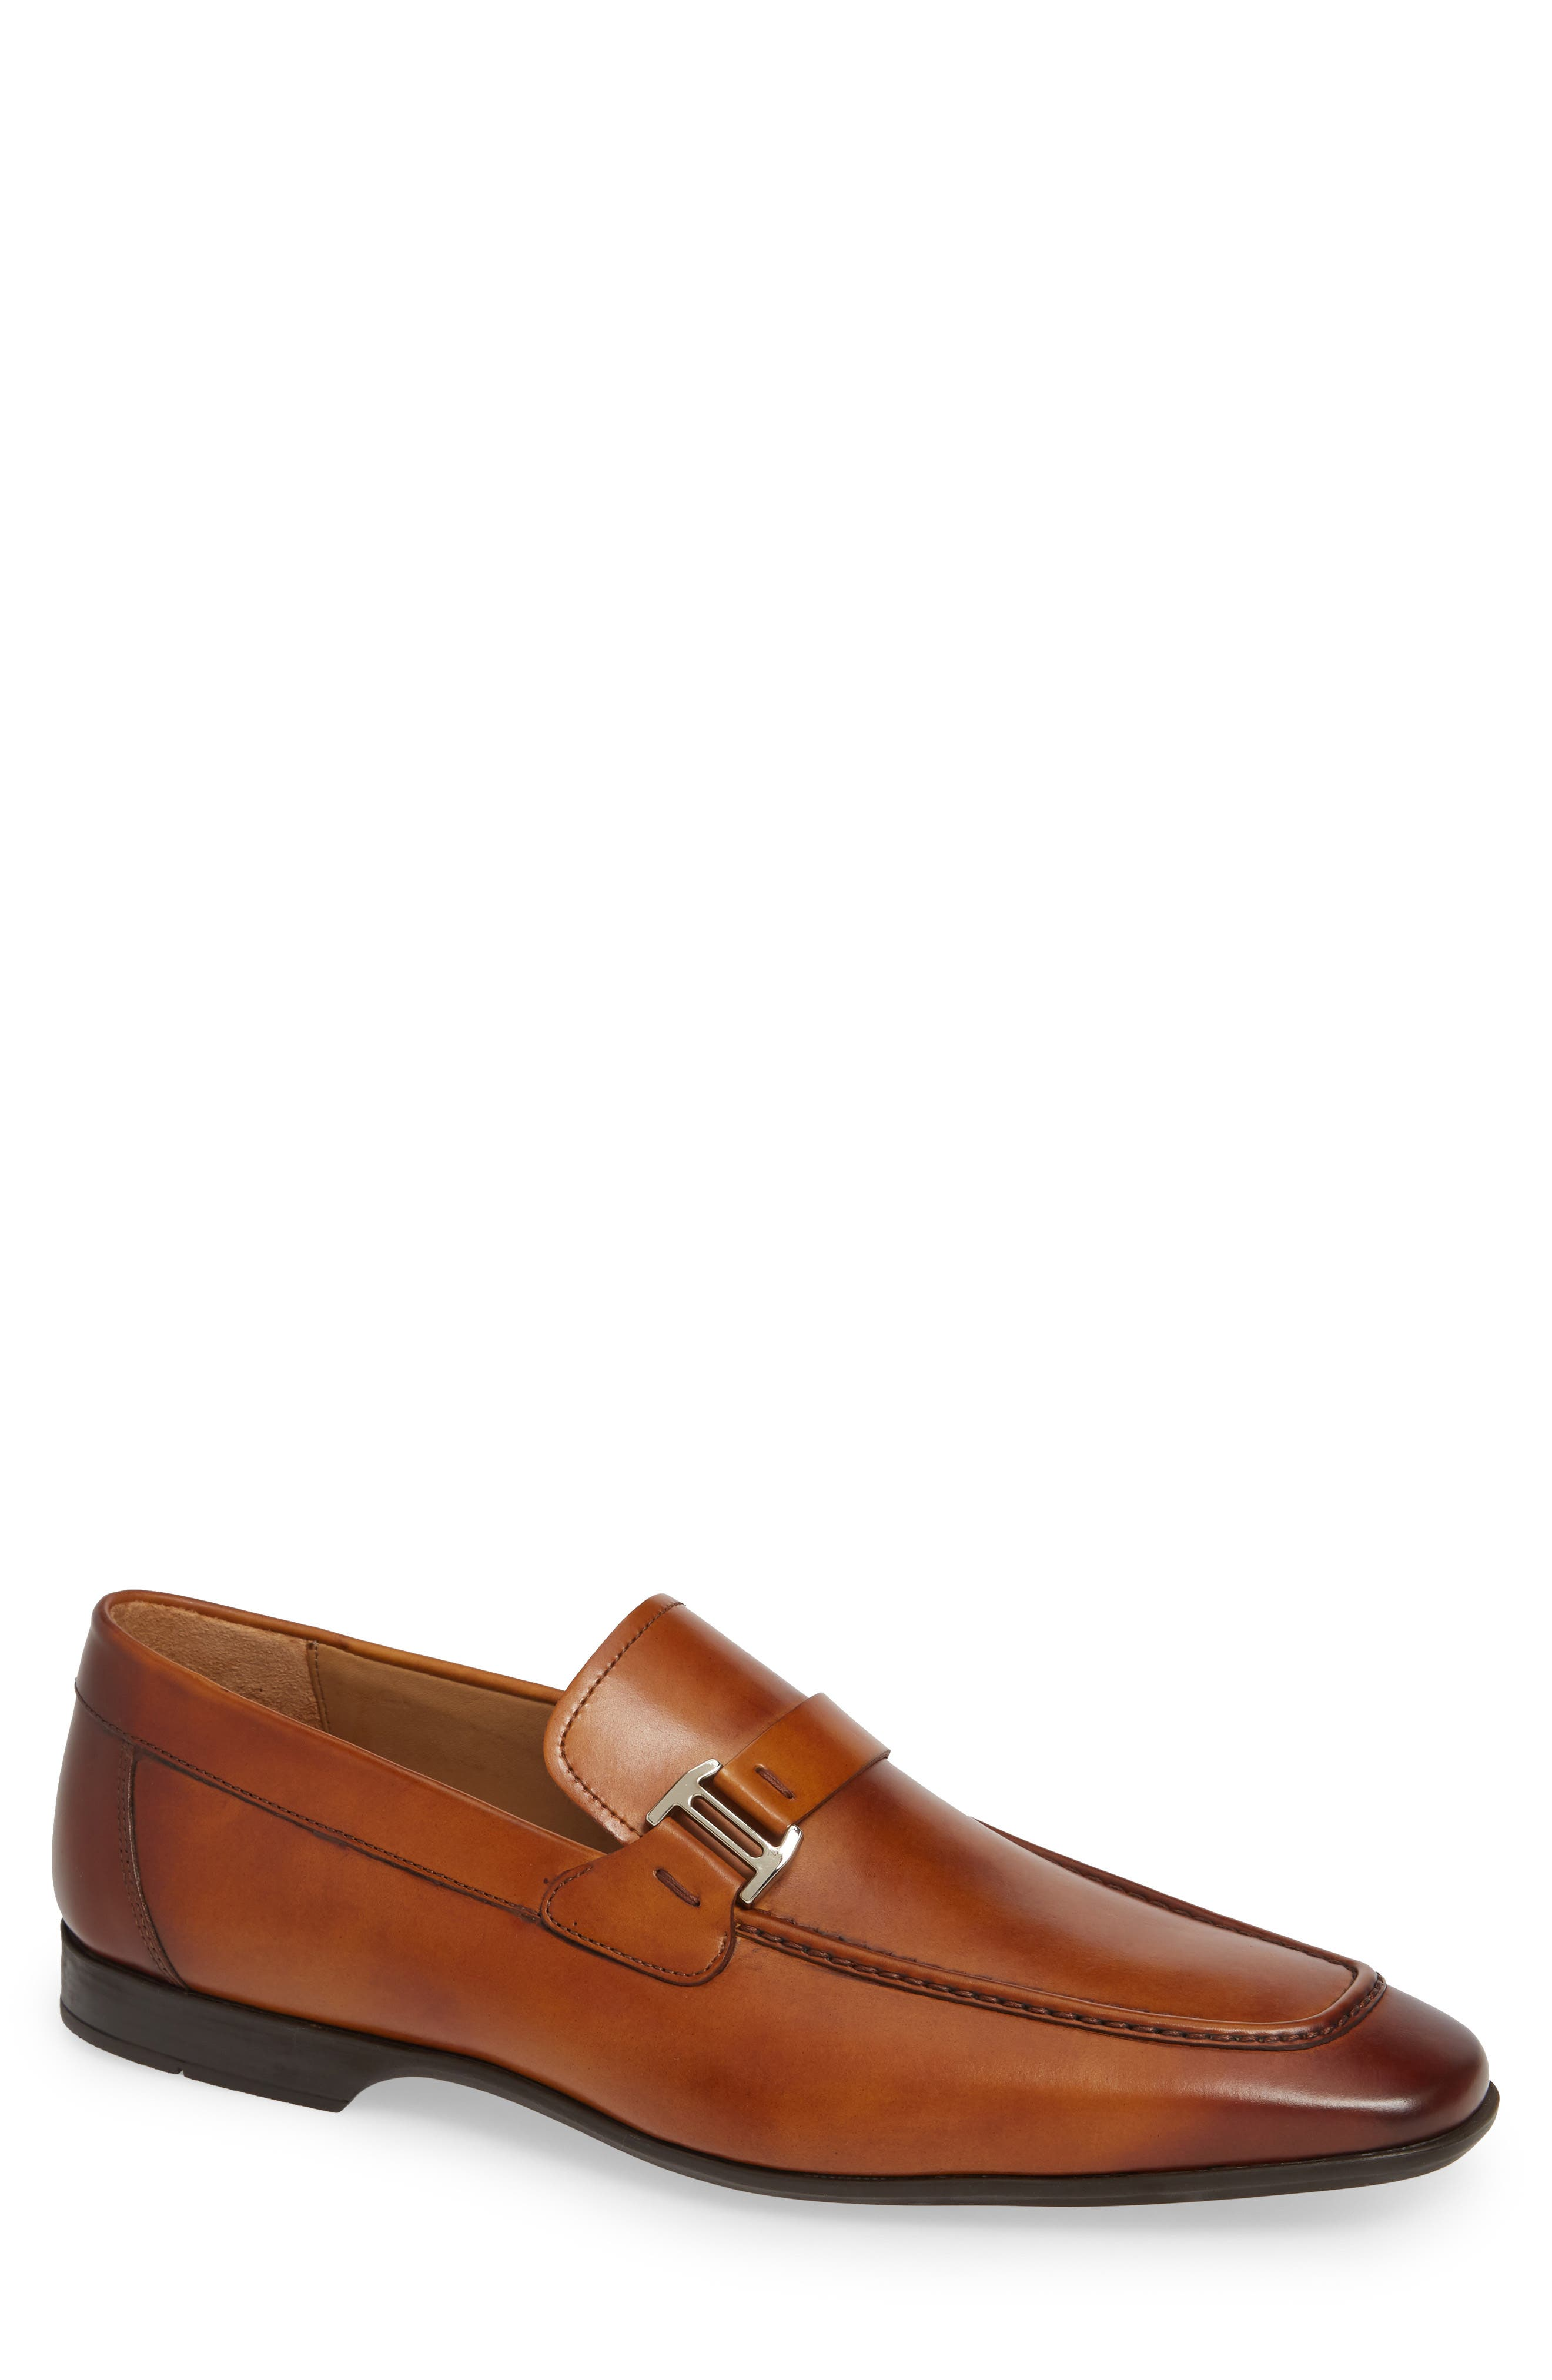 'Lino' Loafer,                             Main thumbnail 1, color,                             BROWN LEATHER